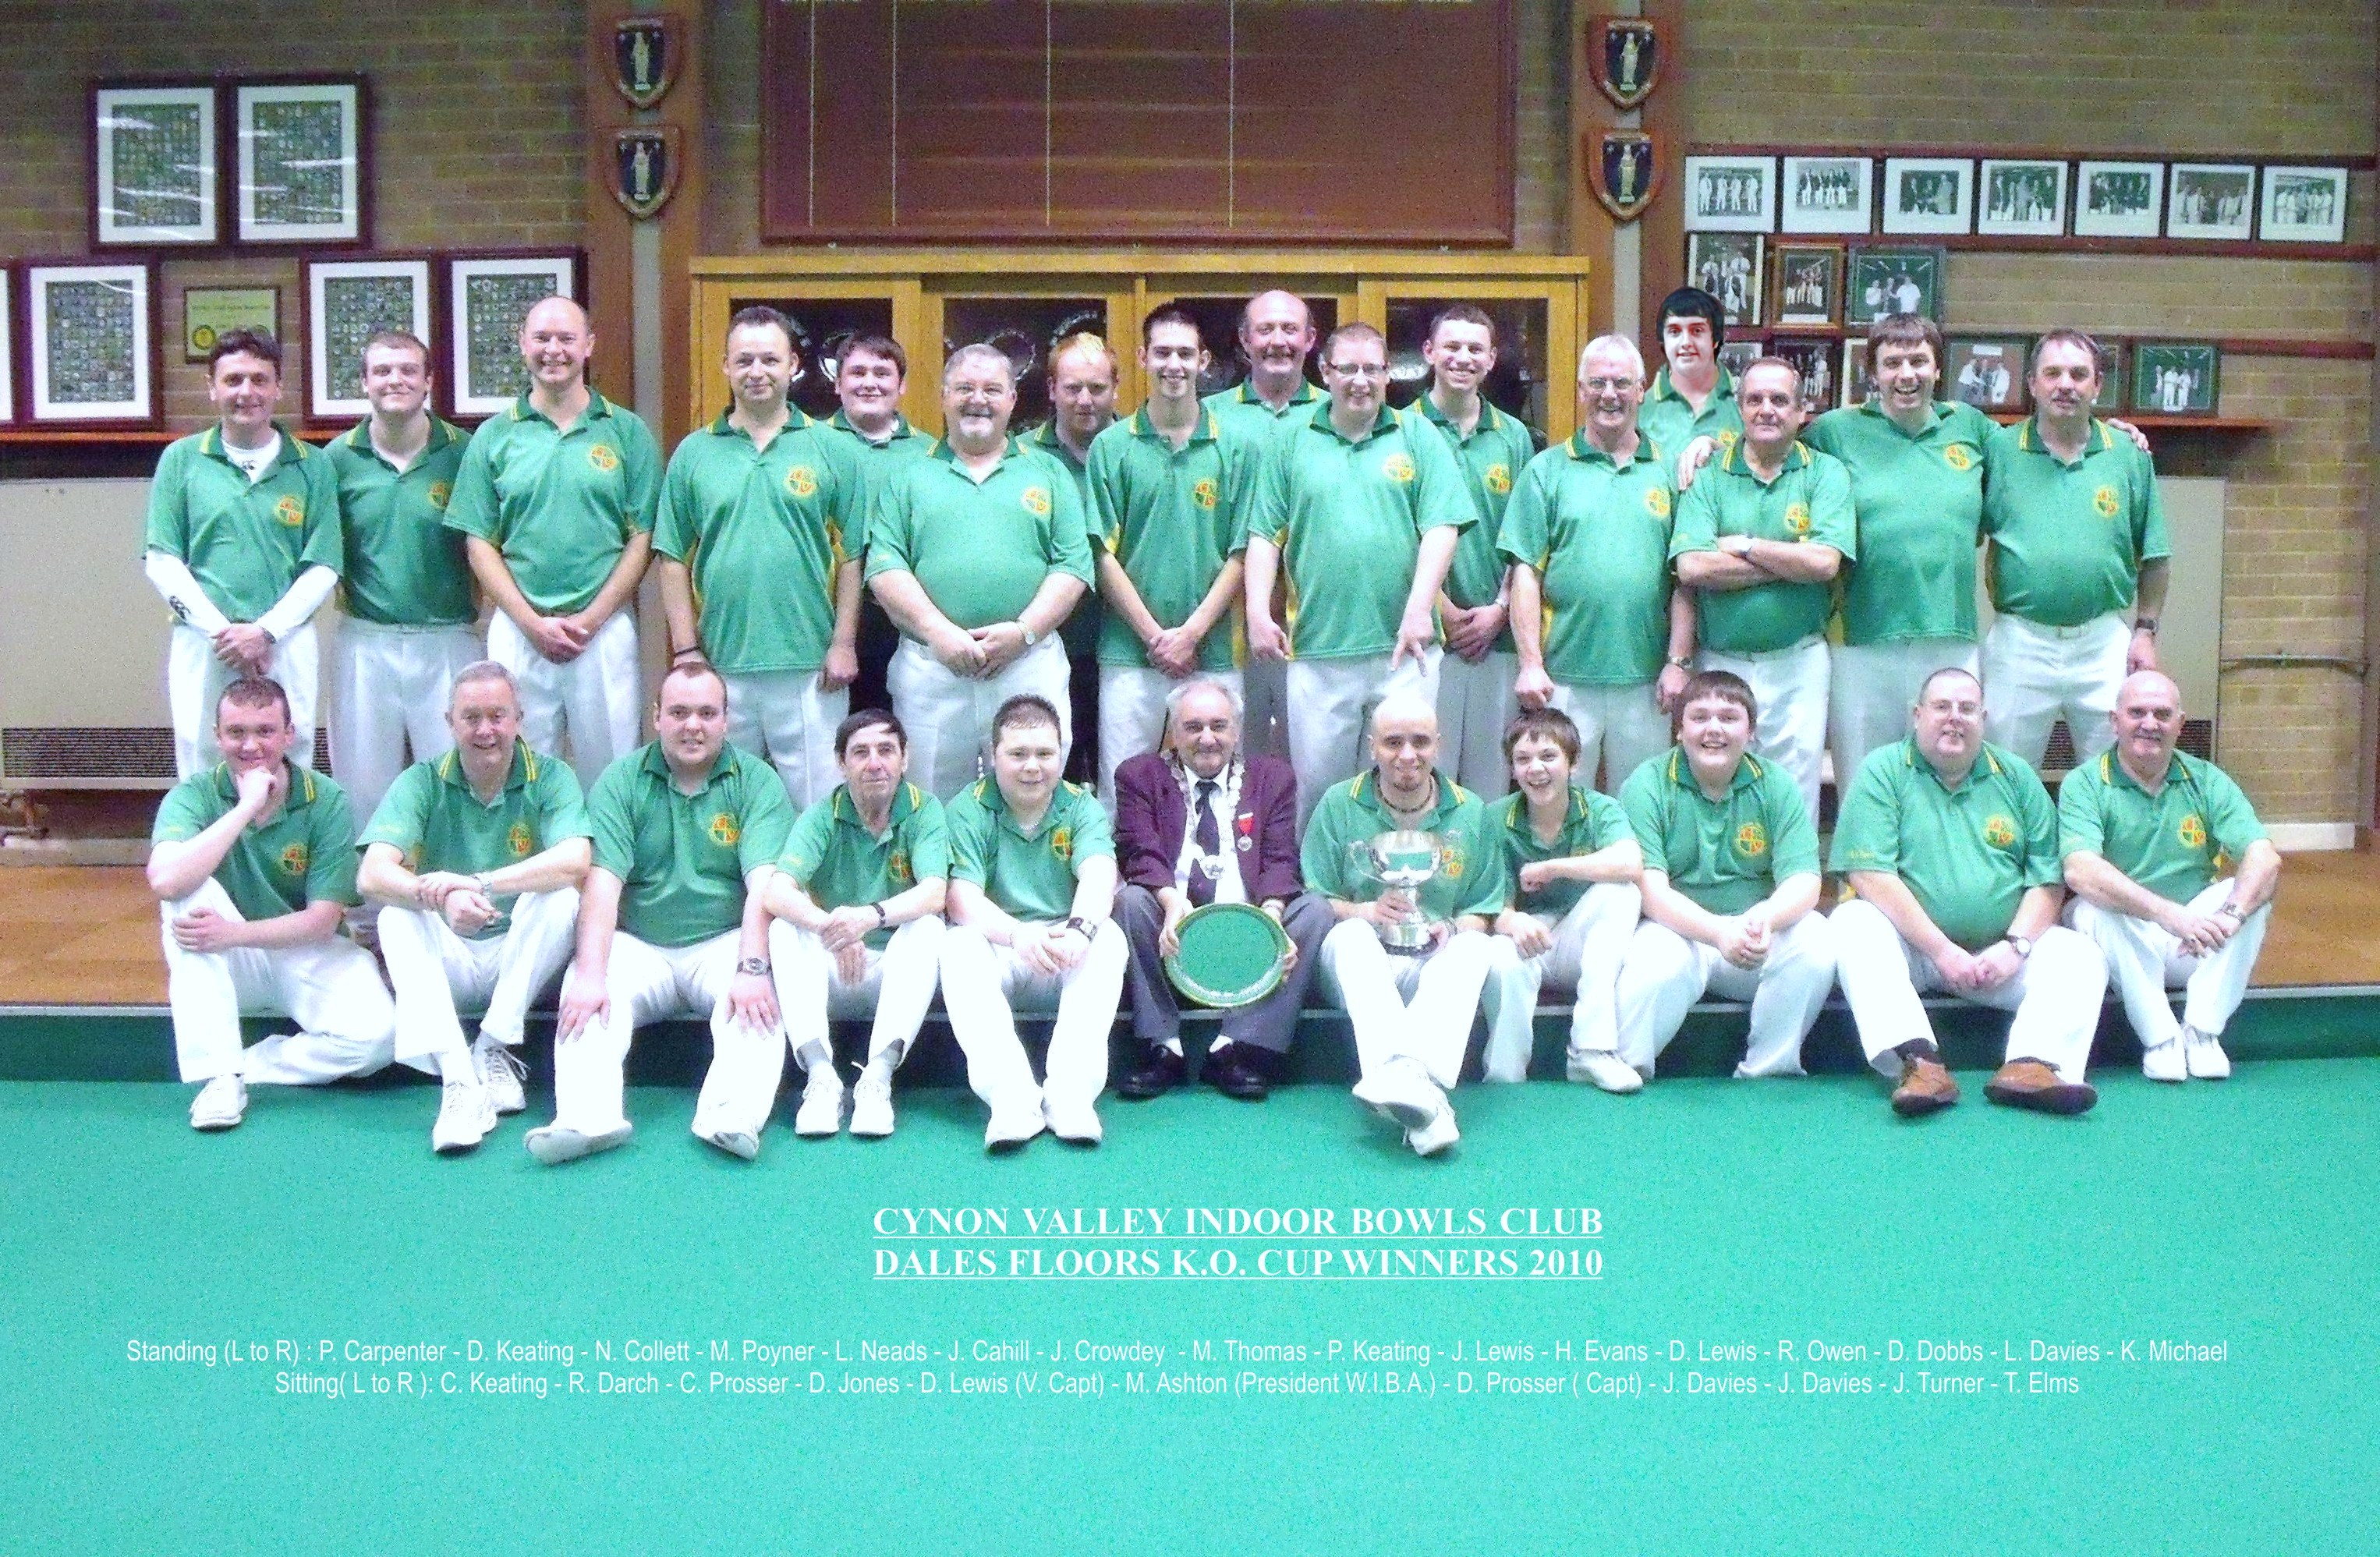 Cynon Valley Indoor Bowls Club